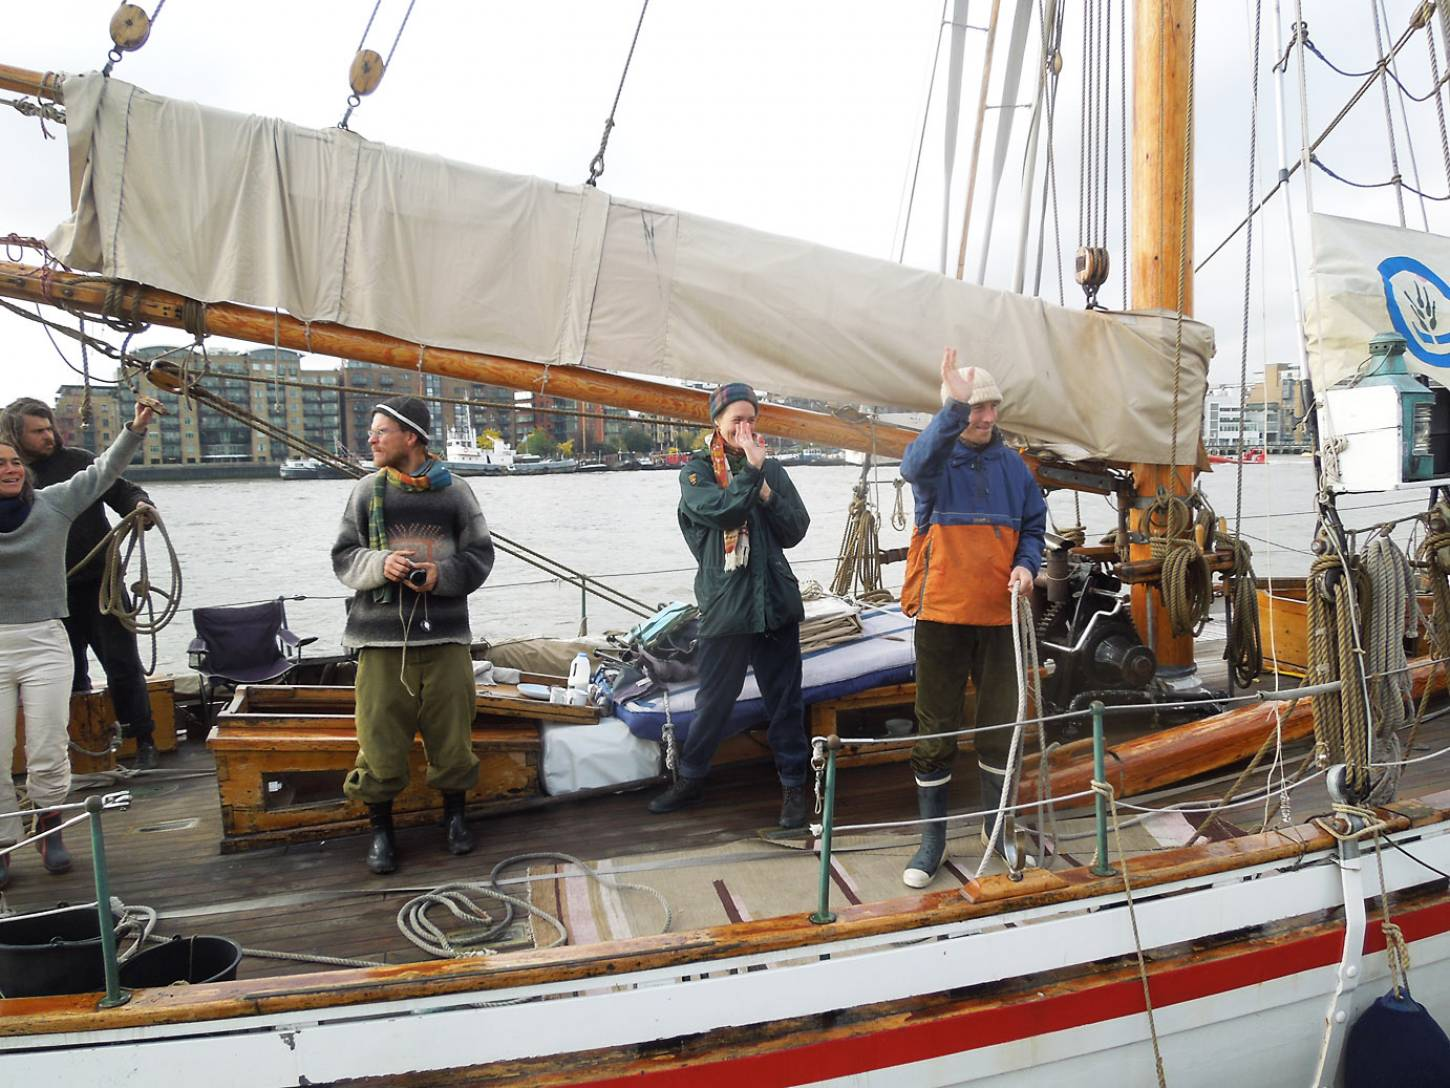 farewell to the <a href='http://https://fr.wikipedia.org/wiki/RS_10_Christiania' target='_blank'>RS10 Christiana</a> and her crew on next leg of their <a href='http://futurefarmers.com/seedjourney/' target='_blank'>seed journey</a> to Antwerp carrying back from BBA some <a href='http://www.wheat-gateway.org.uk/search.php?send=1&per=50&search=de%20flandre&simple=1' target='_blank'>Ble Blanc de Flandre</a> - 11:32am&nbsp;26<sup>th</sup>&nbsp;Oct.&nbsp;'16